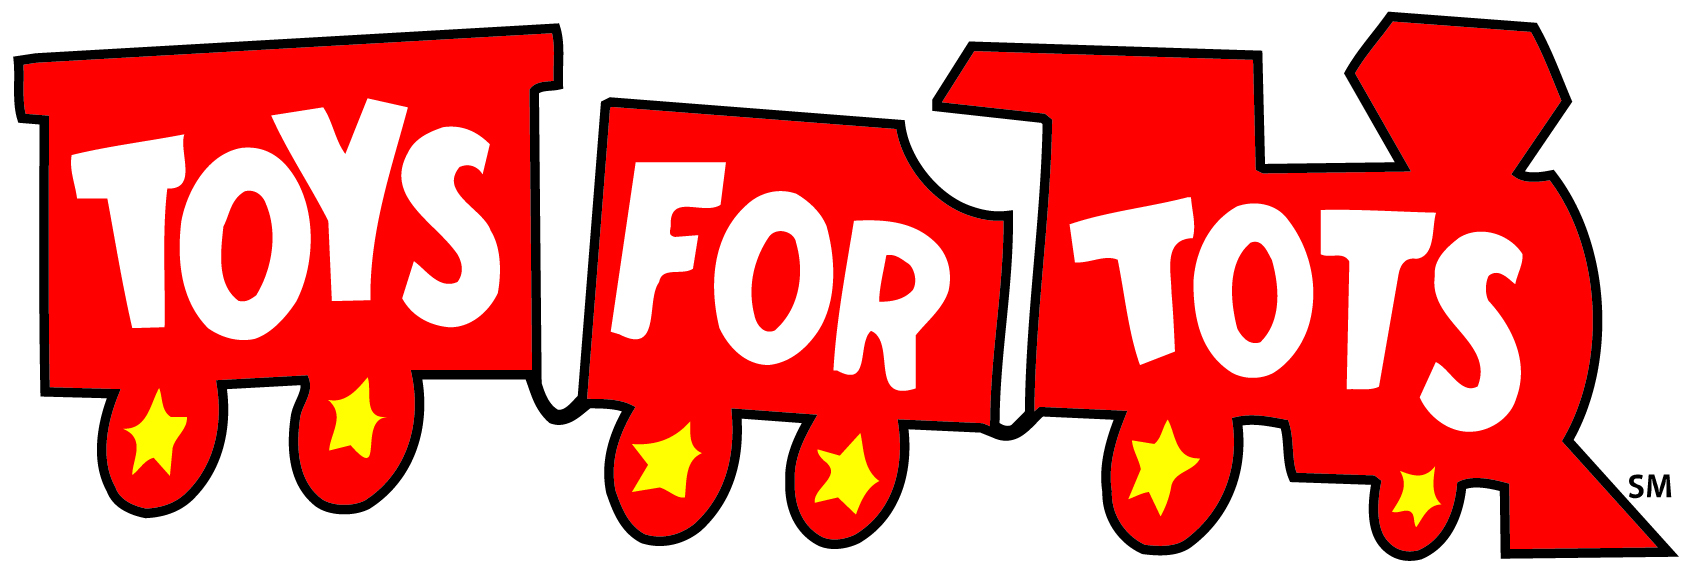 Marine Toys For Tots Logo : Friday five giving to others this holiday season other